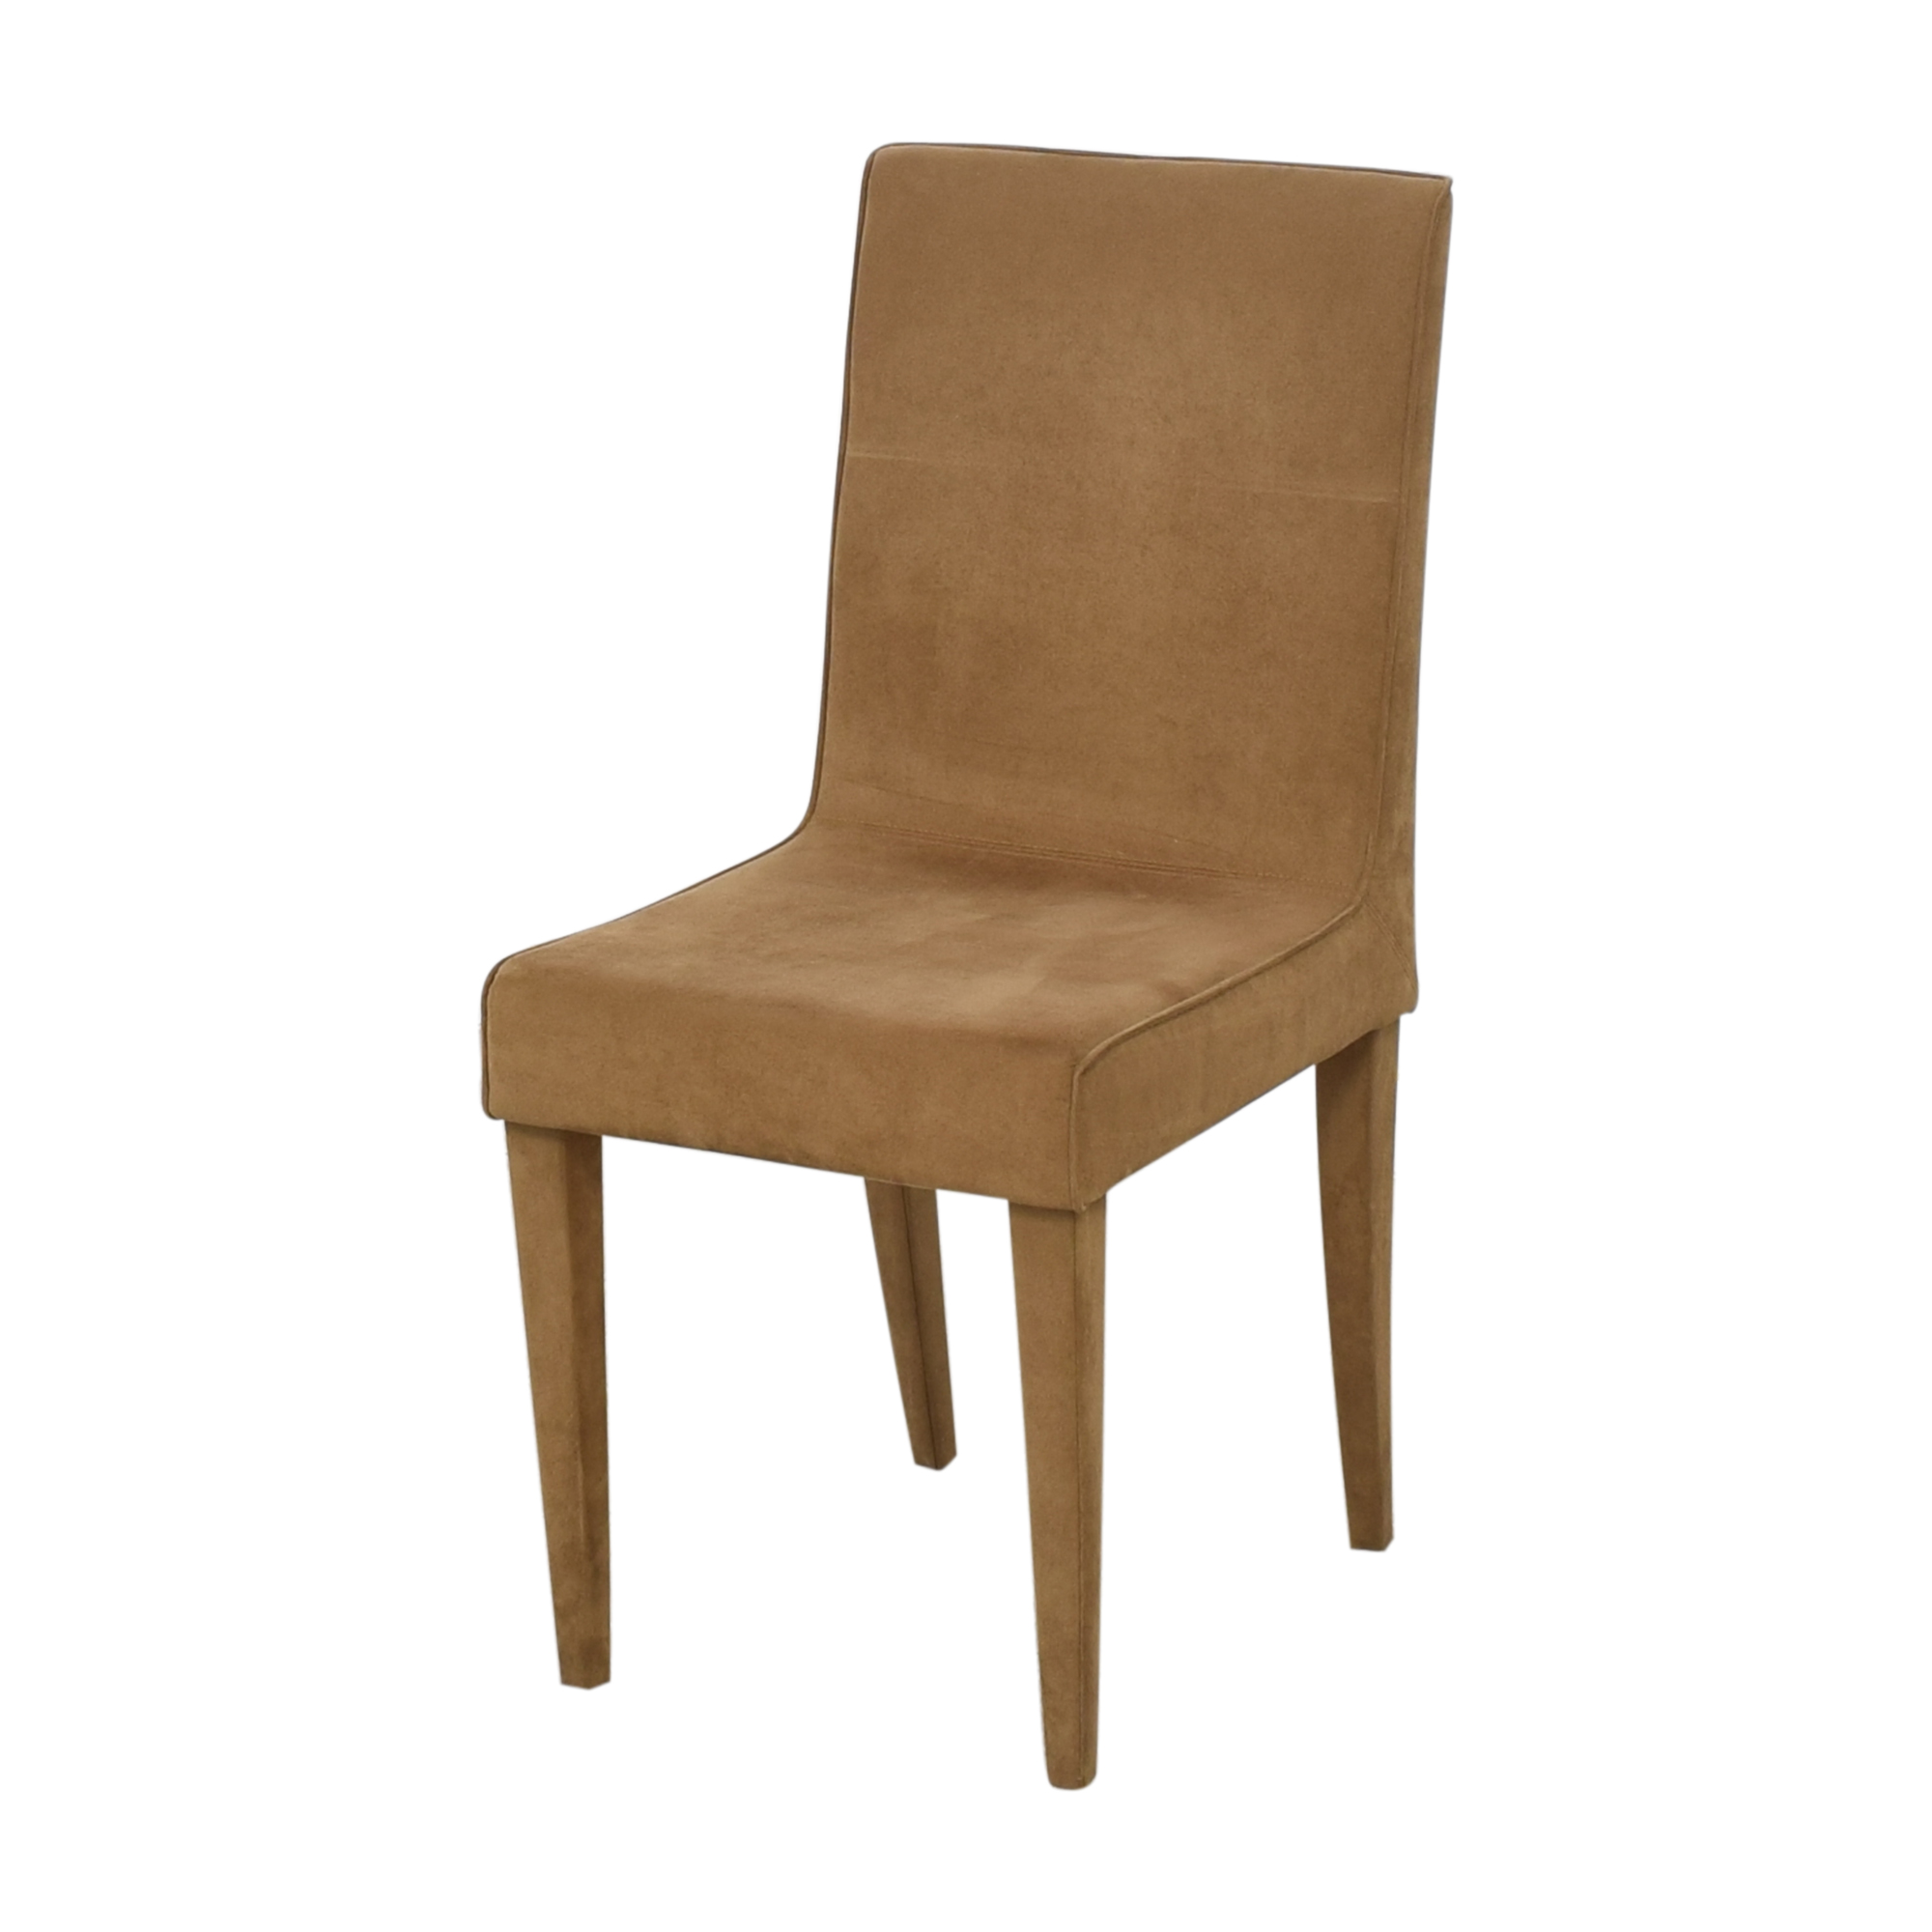 DDC DDC Classic Dining Chairs price